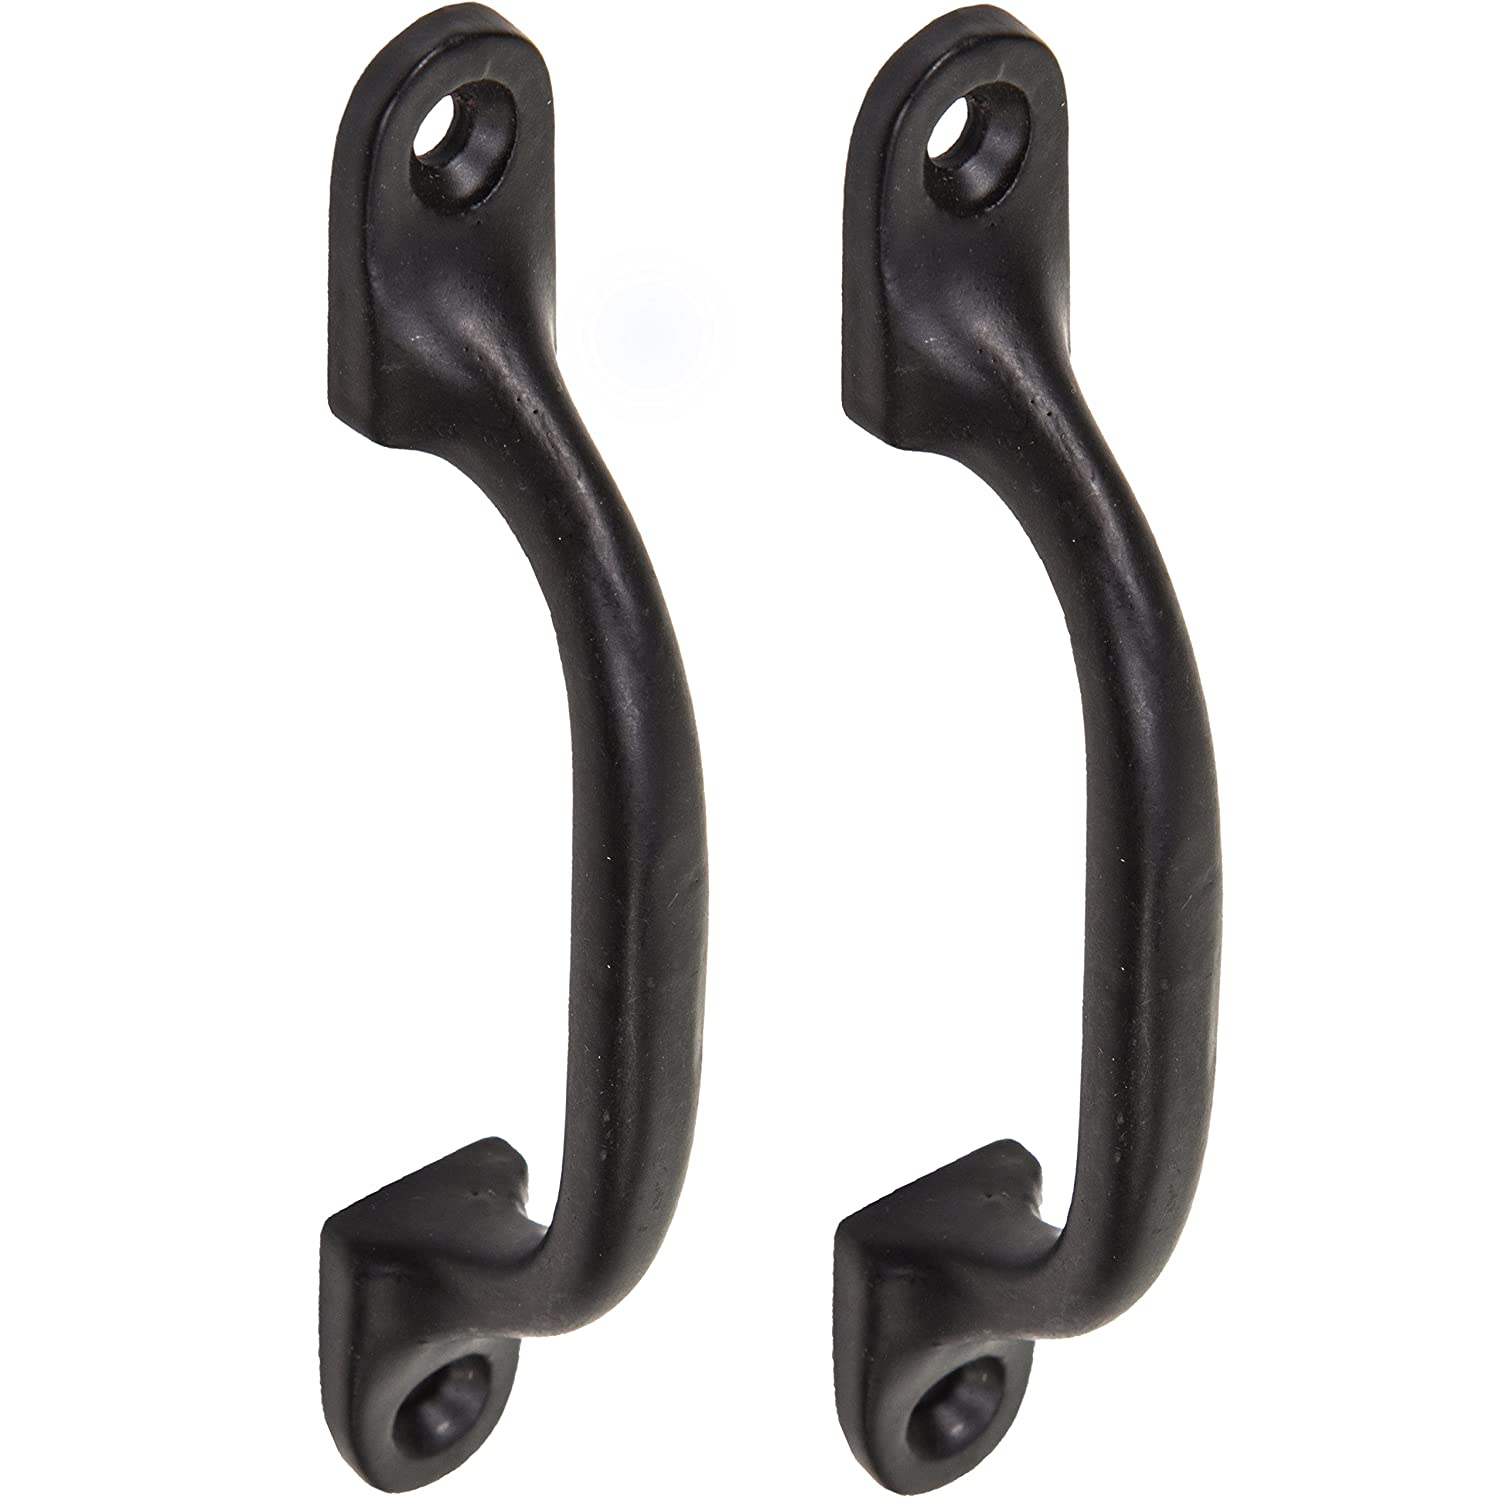 2x Quality Black Cast Iron 4'Pull Handles | Ideal For Kitchen Cabinets, Cupboards & Drawers White Hinge